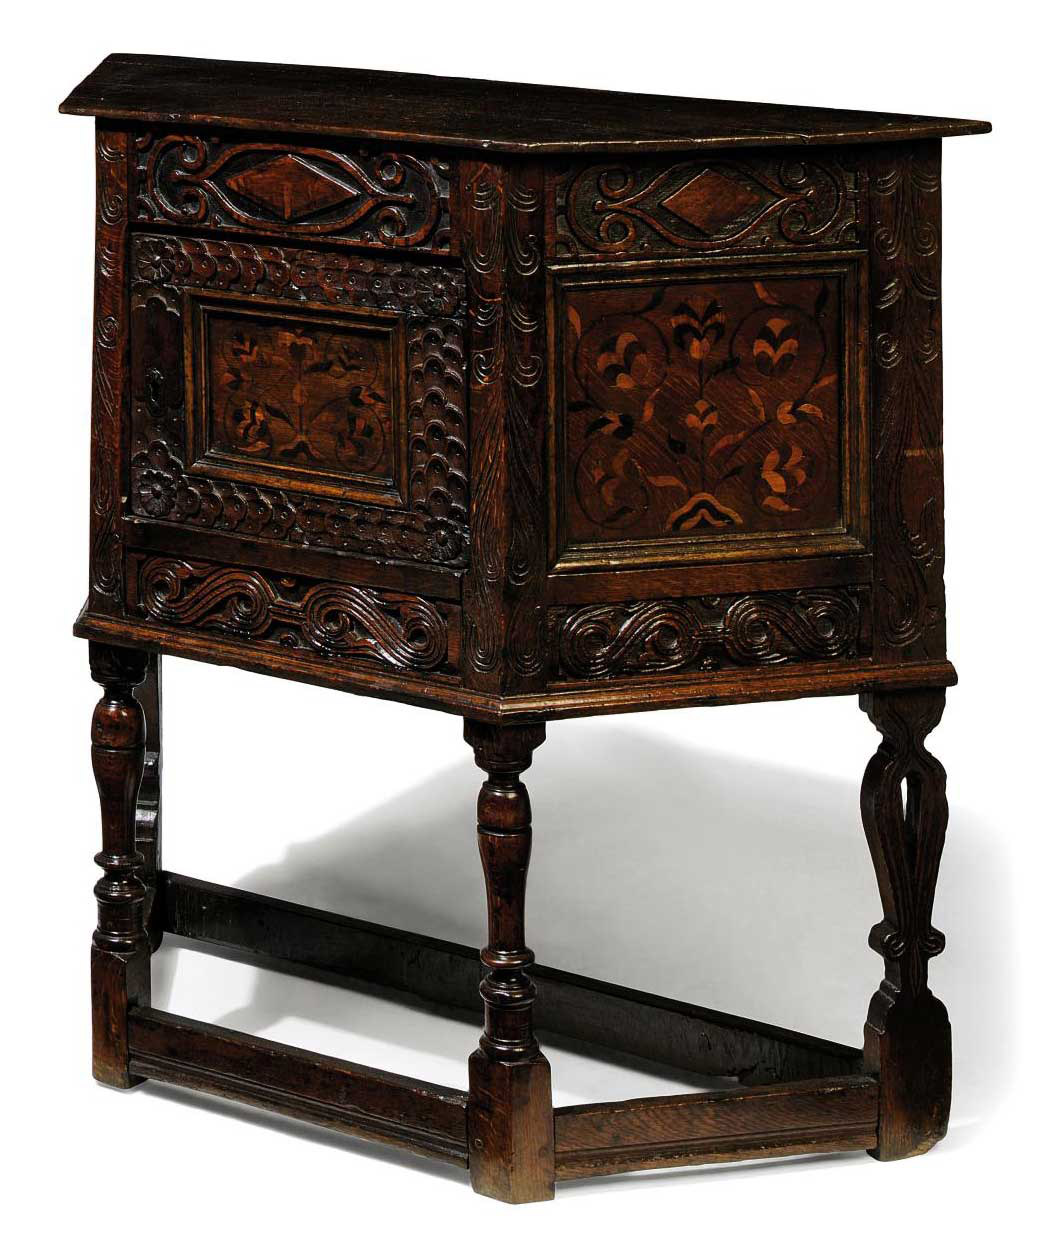 A CHARLES I OAK AND FLORAL MARQUETRY CUPBOARD